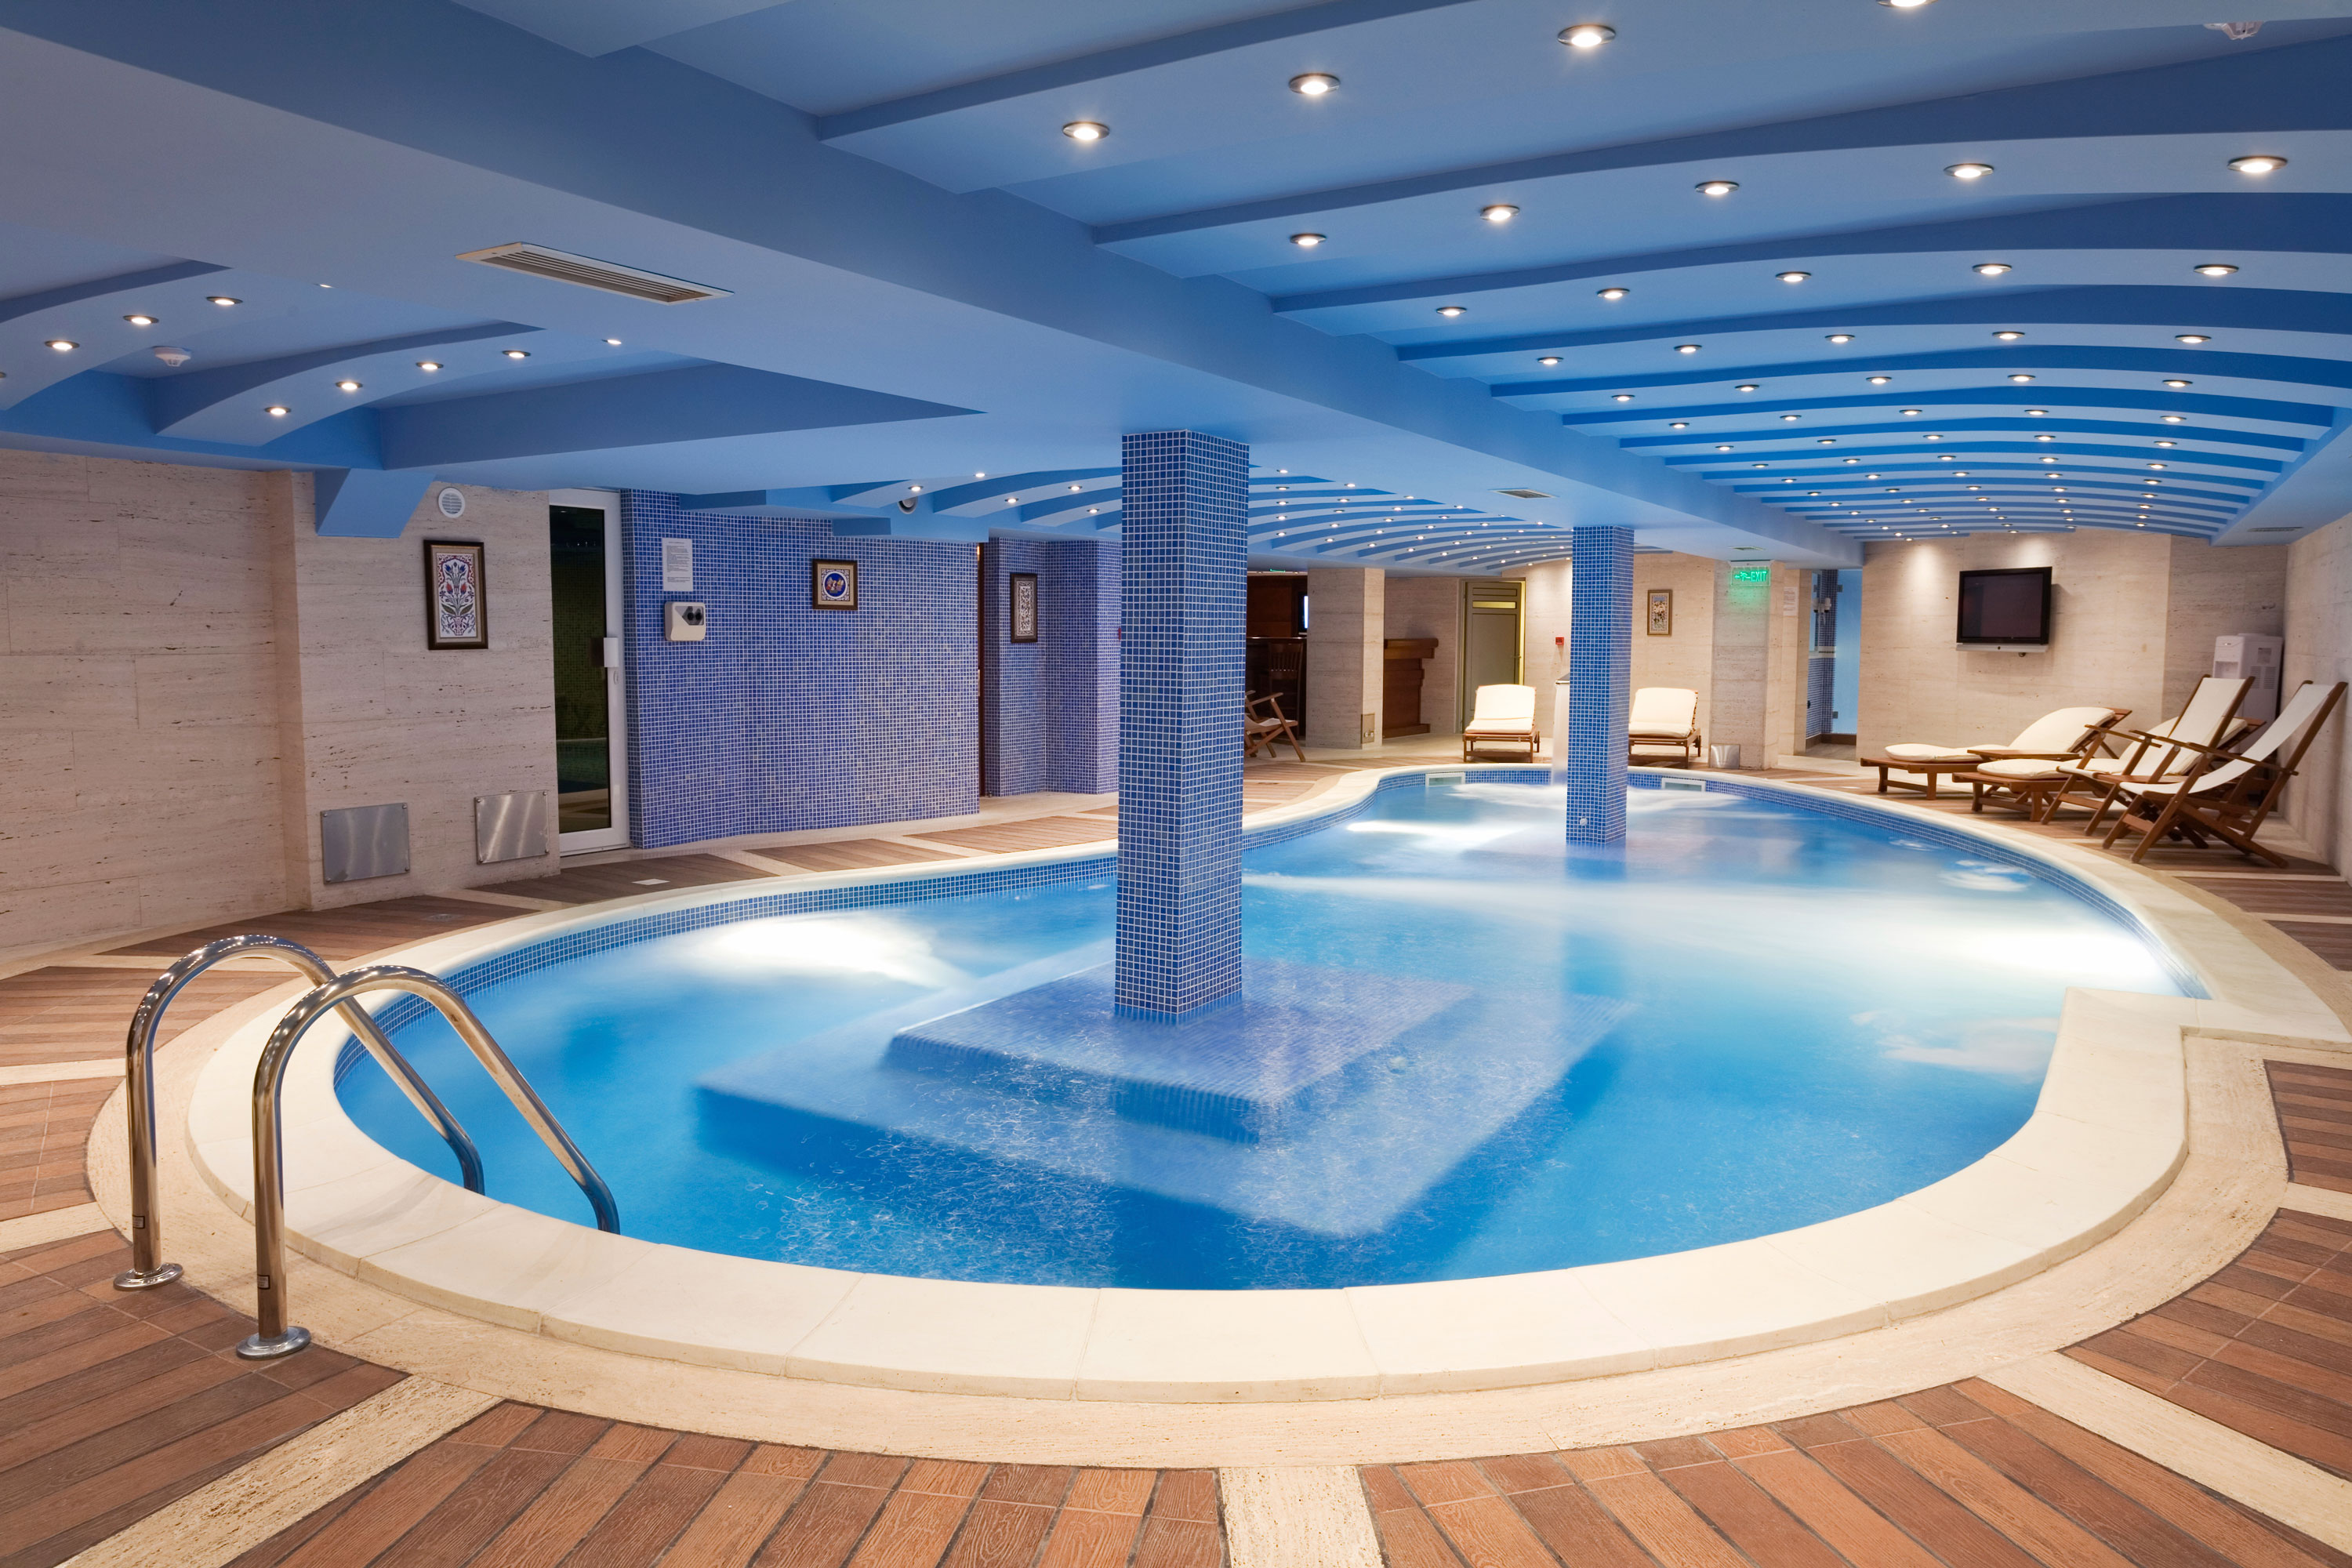 Design Indoor Swimming Pool three indoor pool considerations for next your custom swimming pool